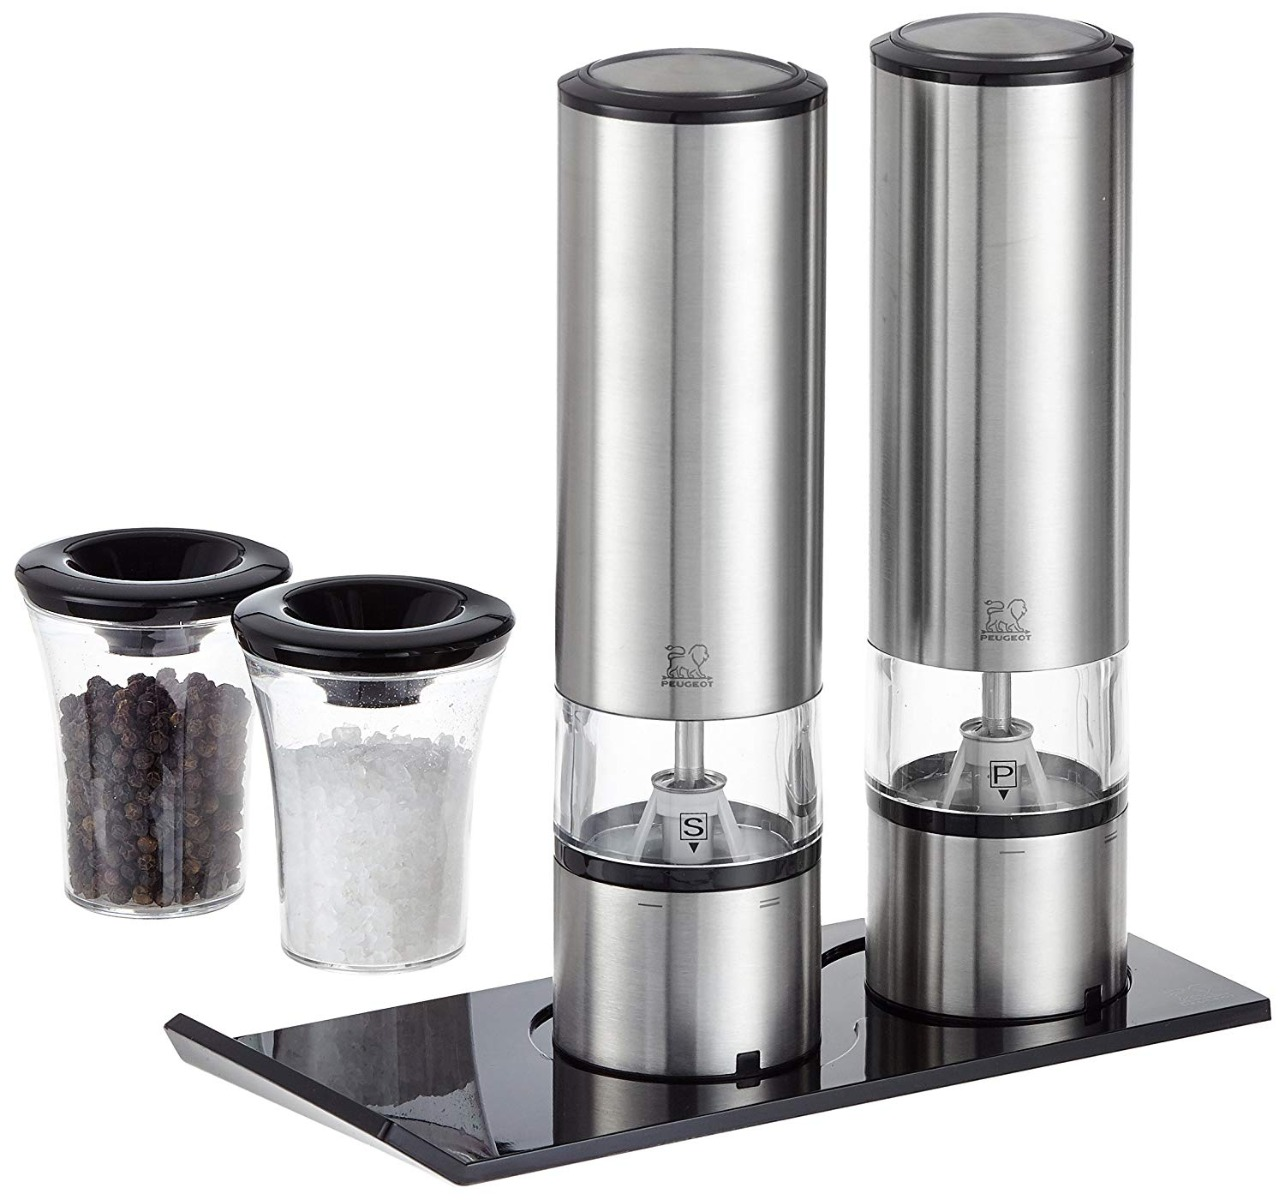 Elis Sense DUO Salt & Pepper Set with tray